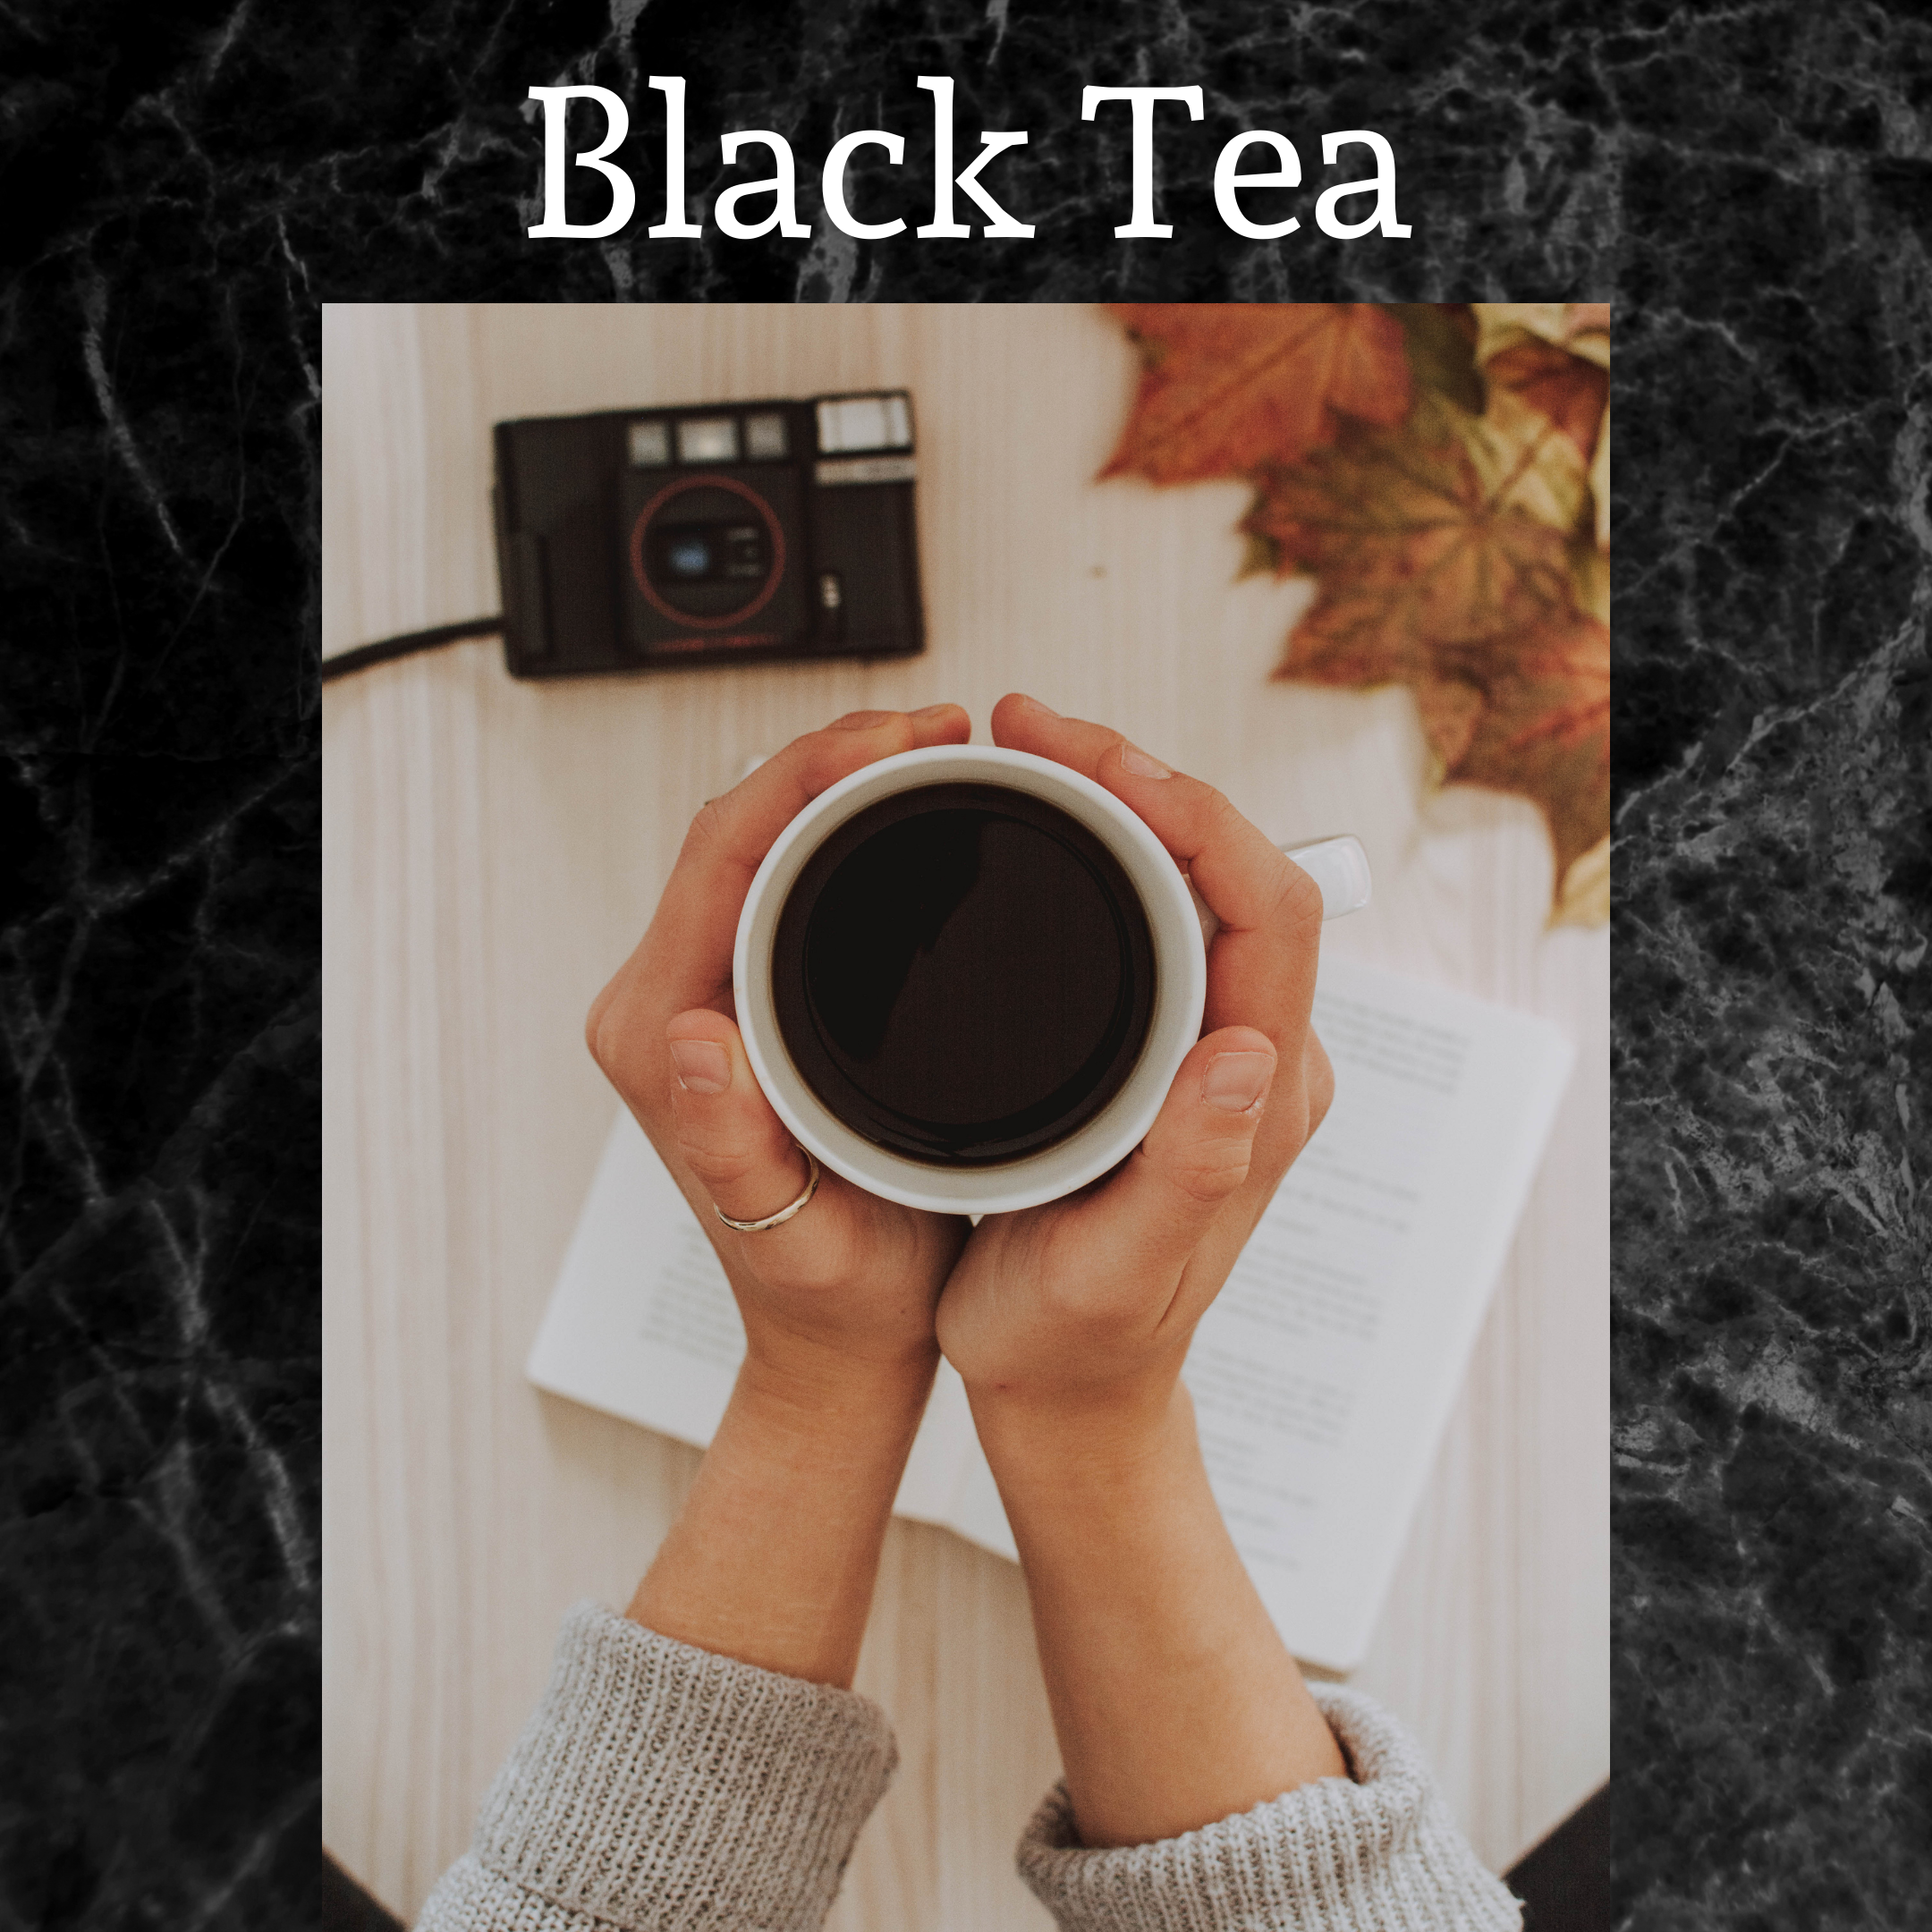 Black tea, lady holding a cup